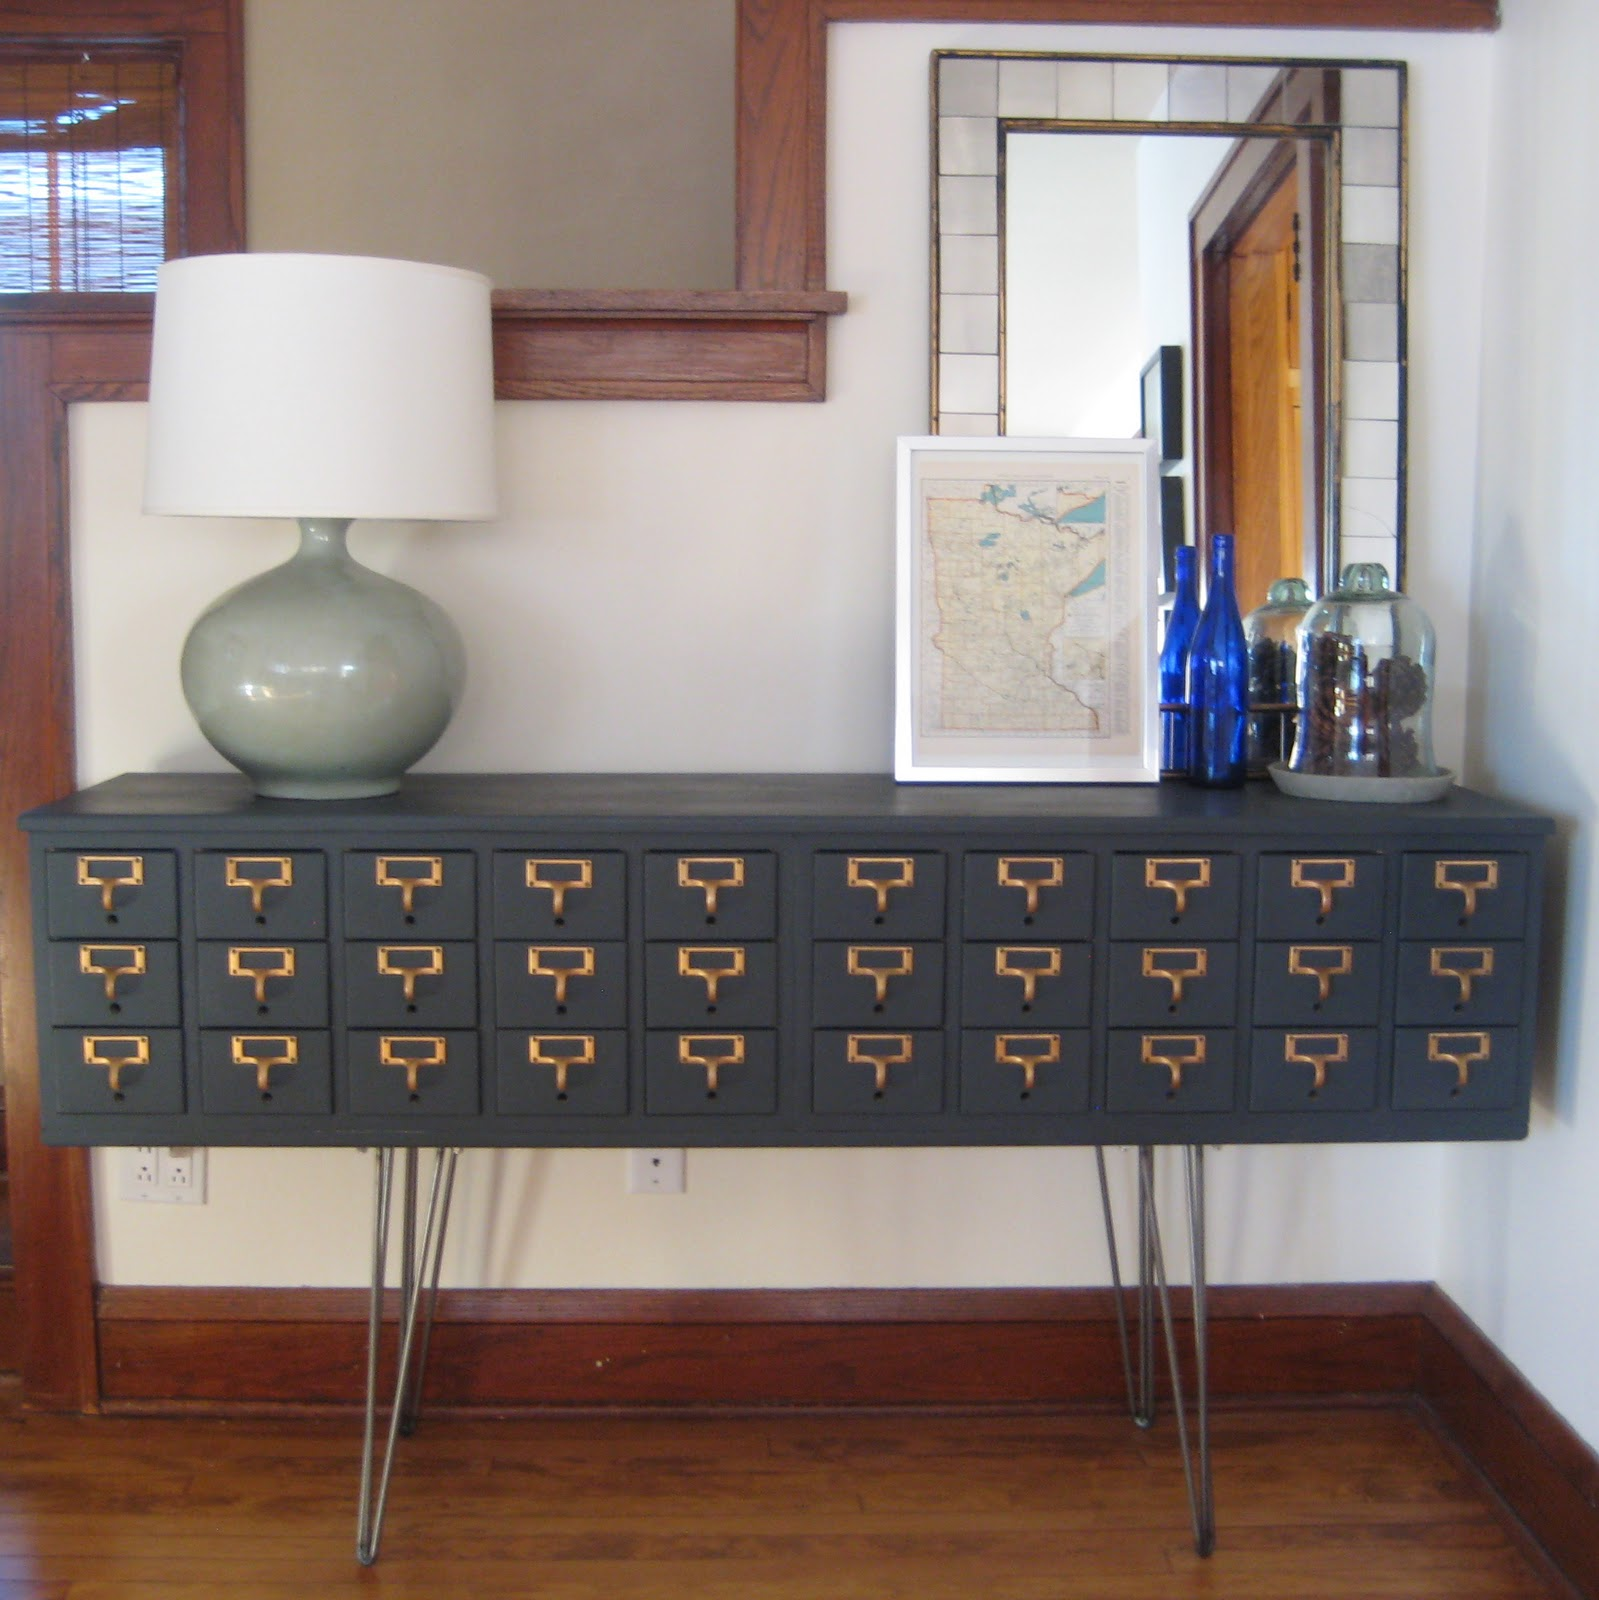 8 Repurposed Card Catalogs